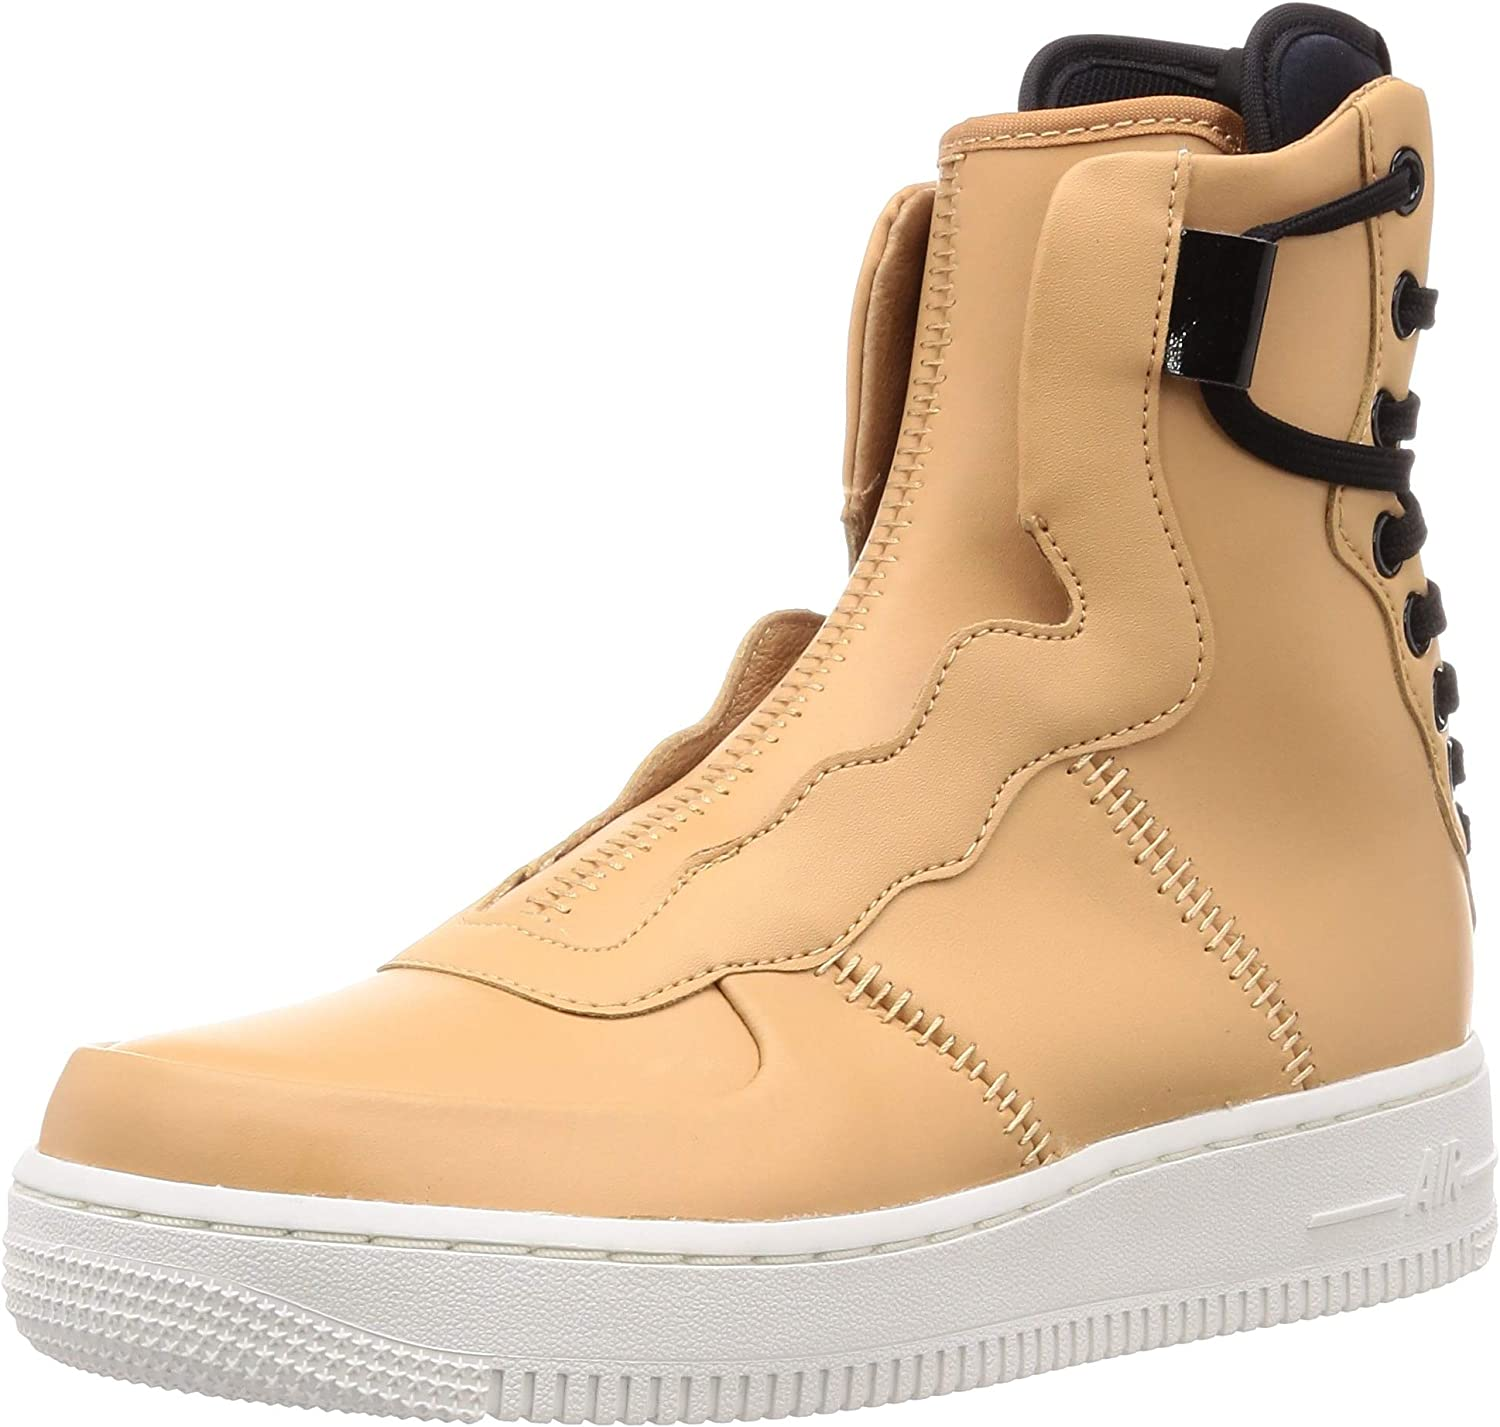 bostezando Anterior cualquier cosa  Nike W Af1 Rebel Xx, Women's Slouch Boots: Amazon.co.uk: Shoes & Bags